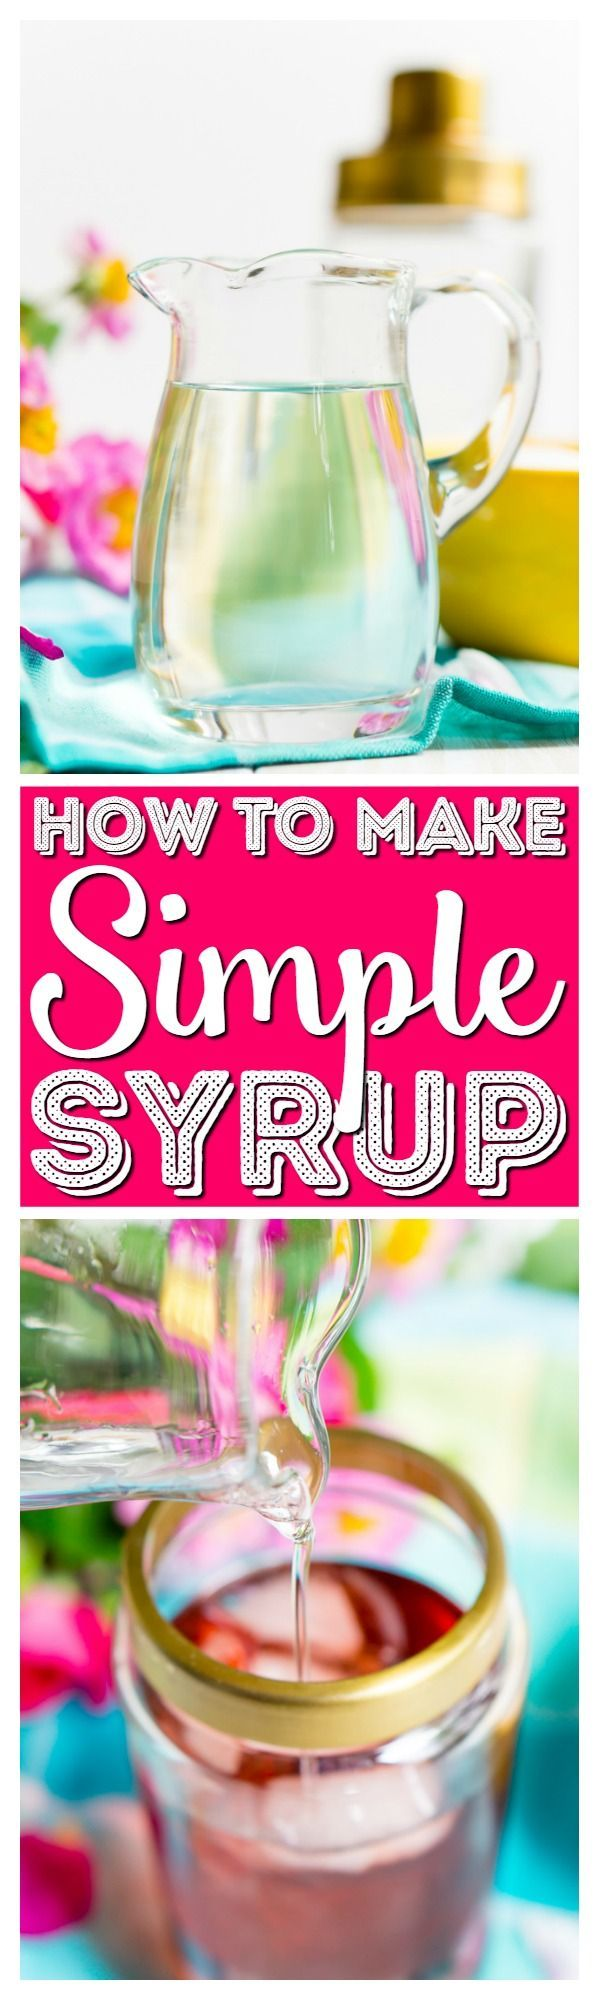 How To Make Simple Syrup at home in minutes with just water and sugar on the stove top. This syrup is the perfect way to sweeten cold drinks. via @sugarandsoulco